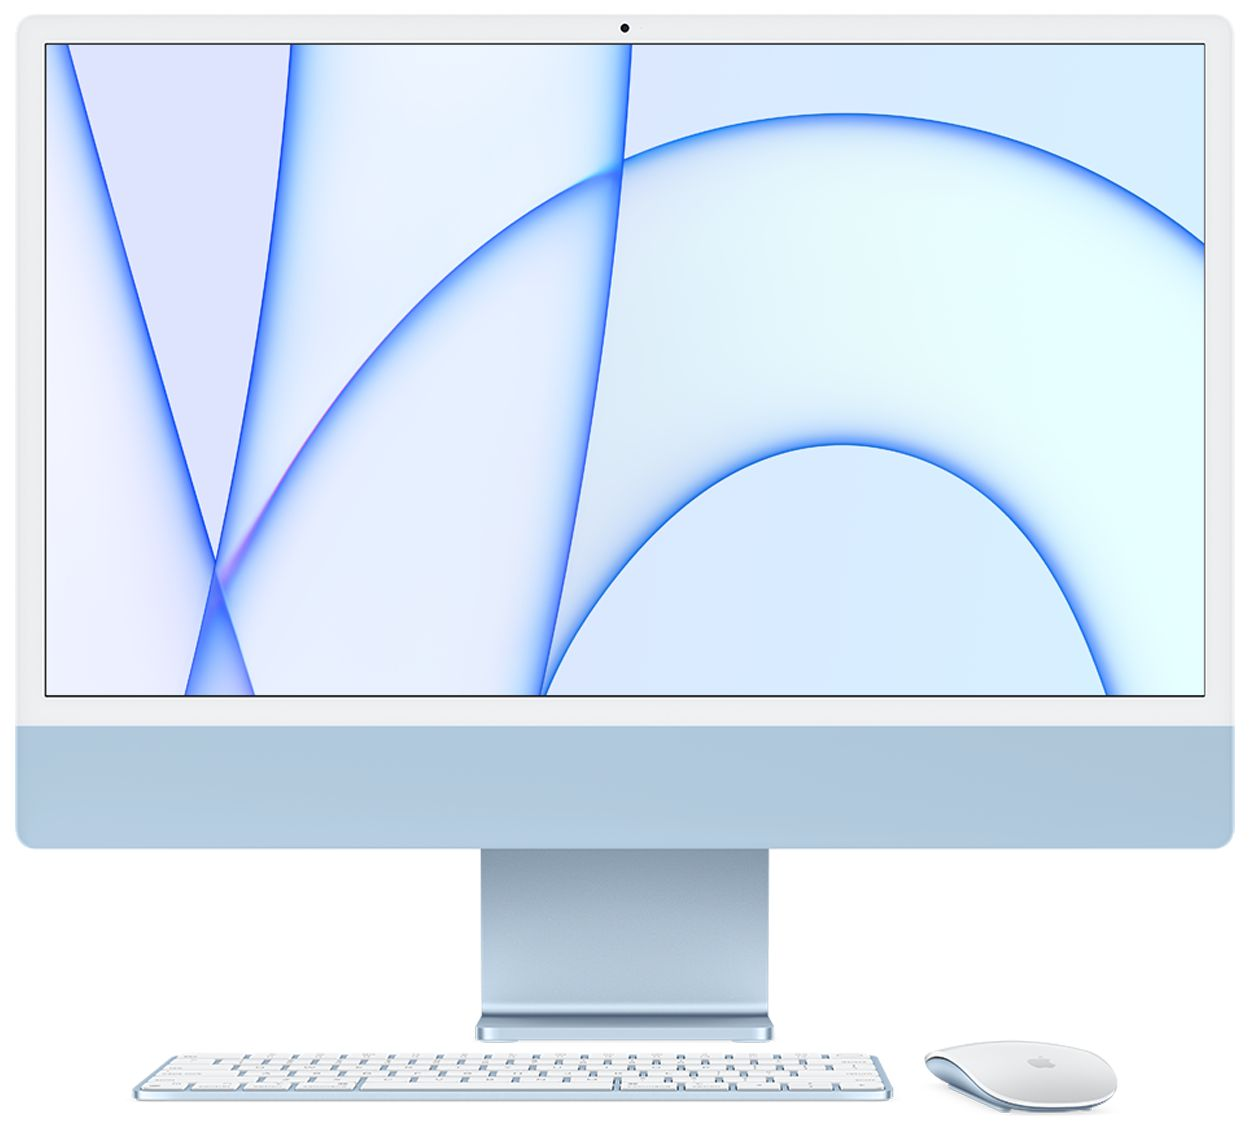 iMac 24-inch M1 chip with 8 core CPU and 7core GPU 8GB/256GB SSD - Blue at Small Dog Electronics